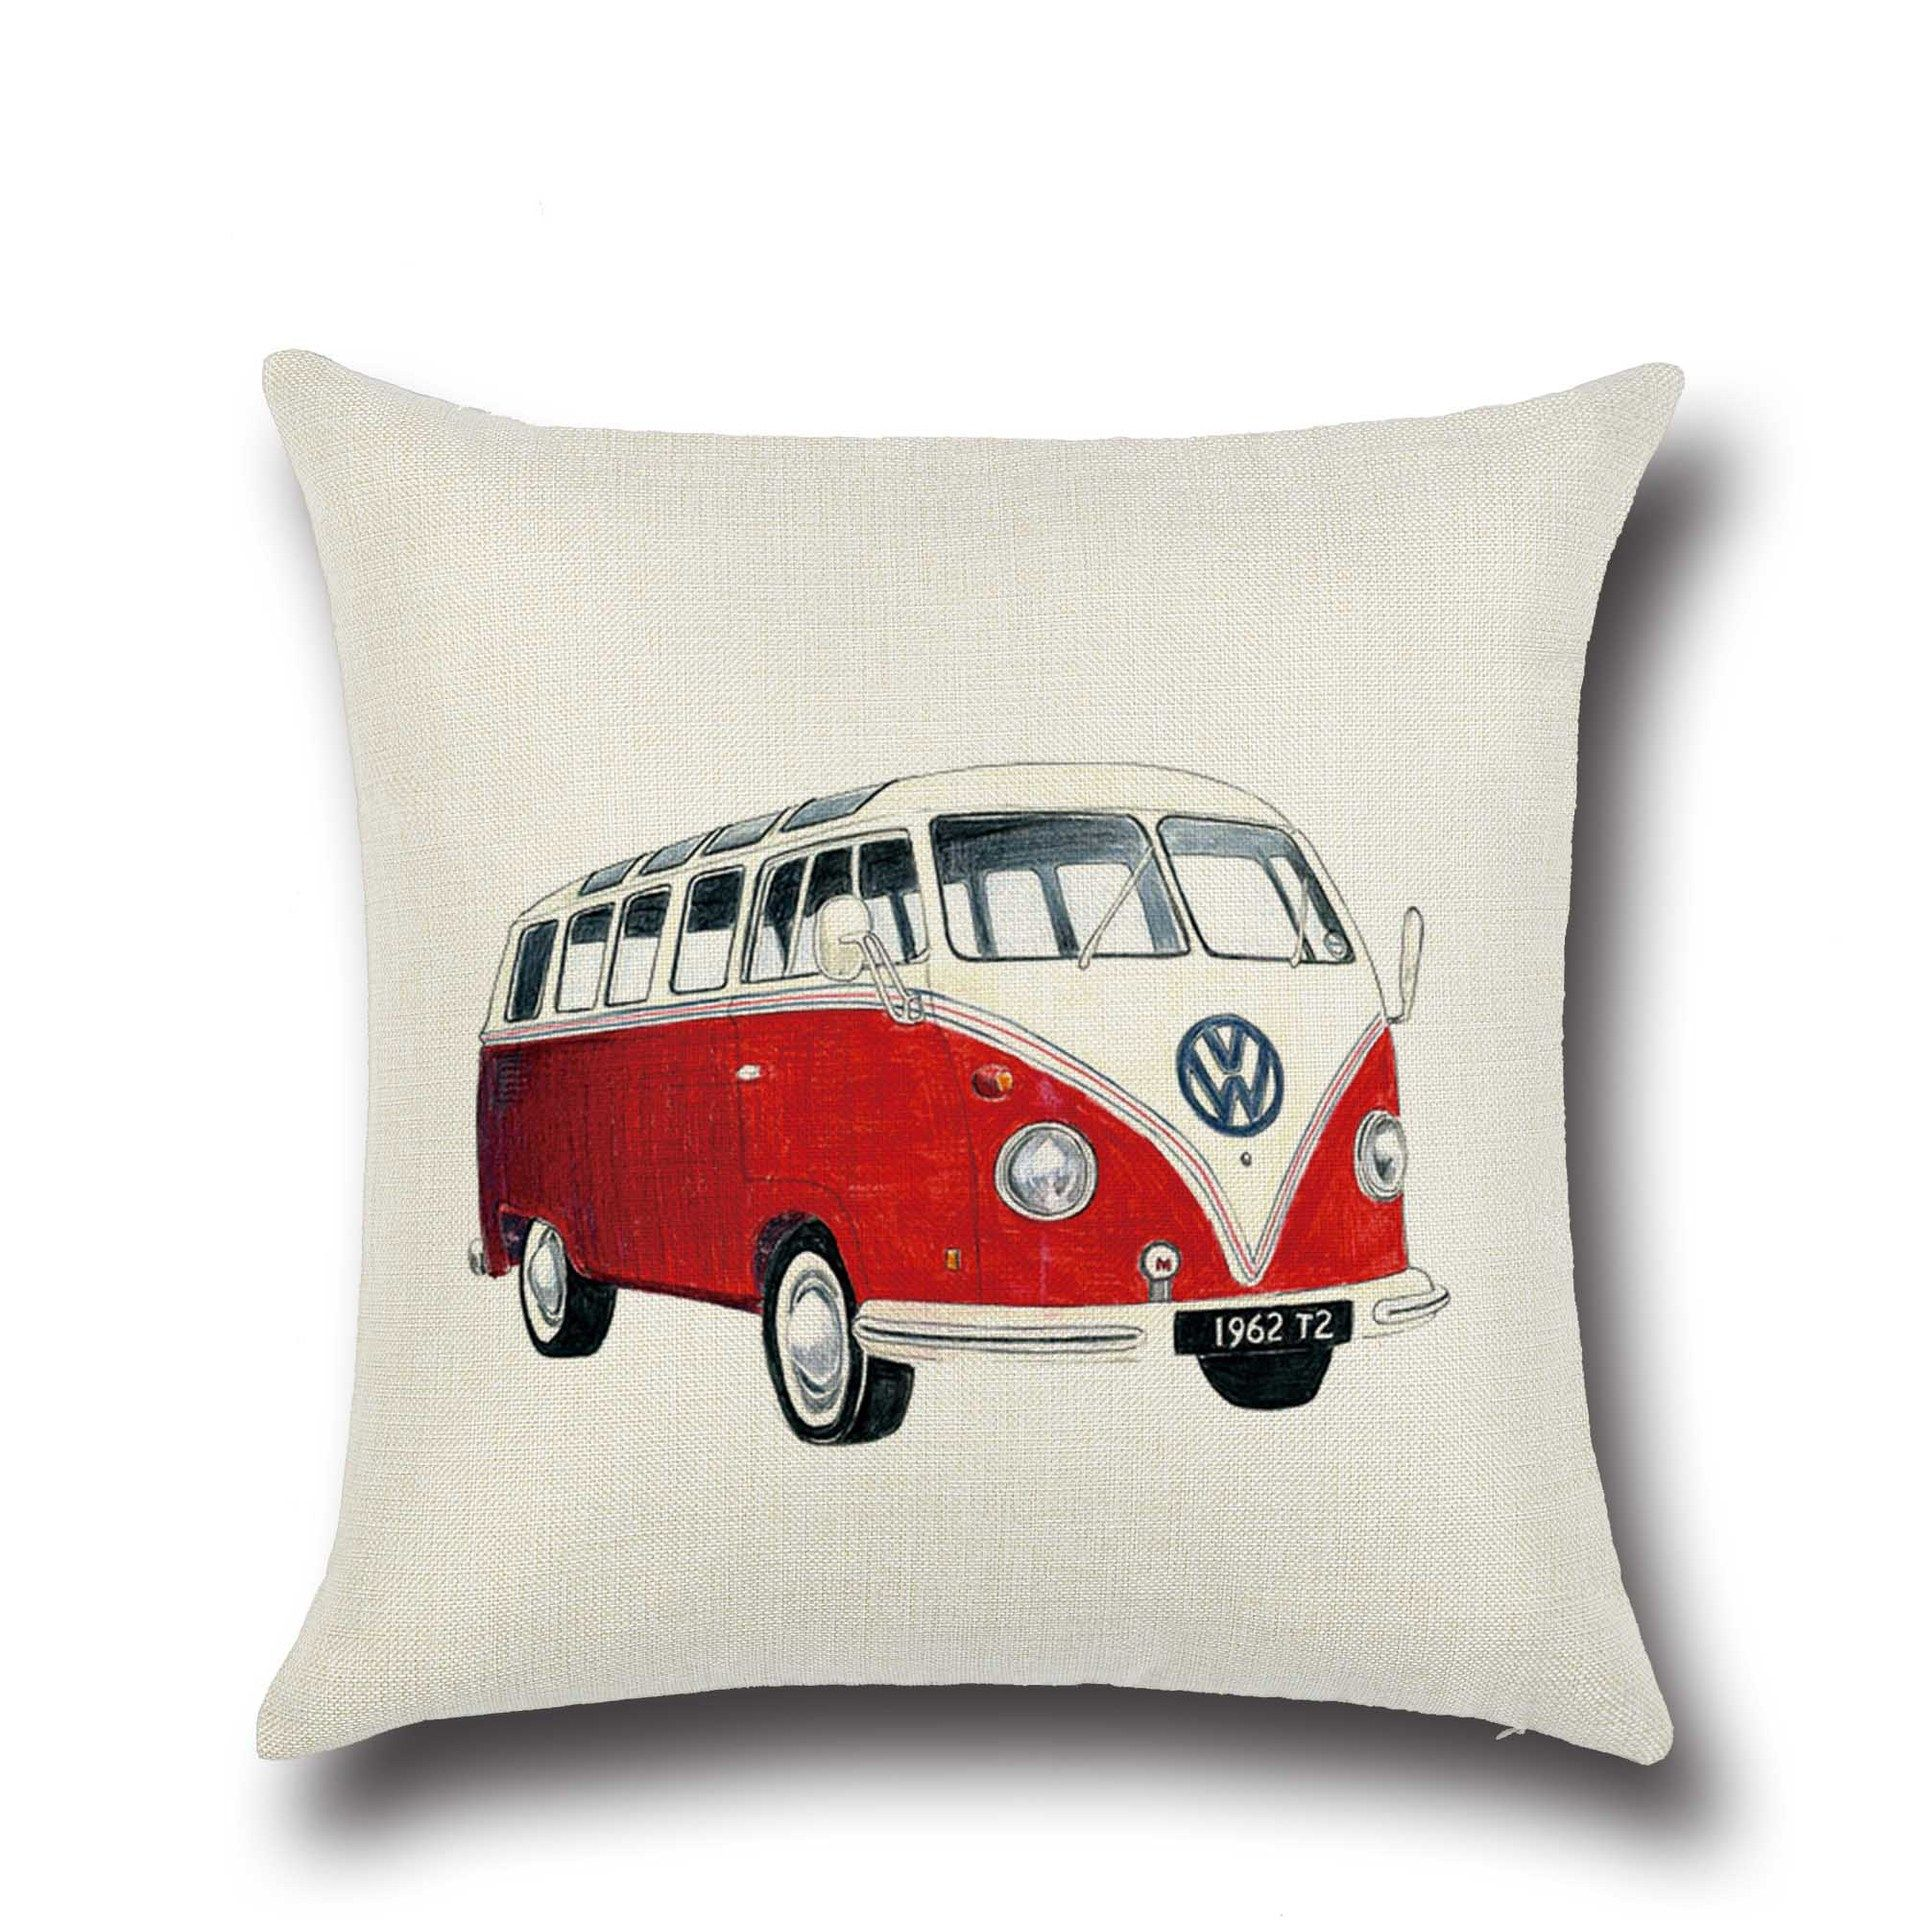 Creative Cartoon Bus Pillow Covers for Car Couch Sofa Chair